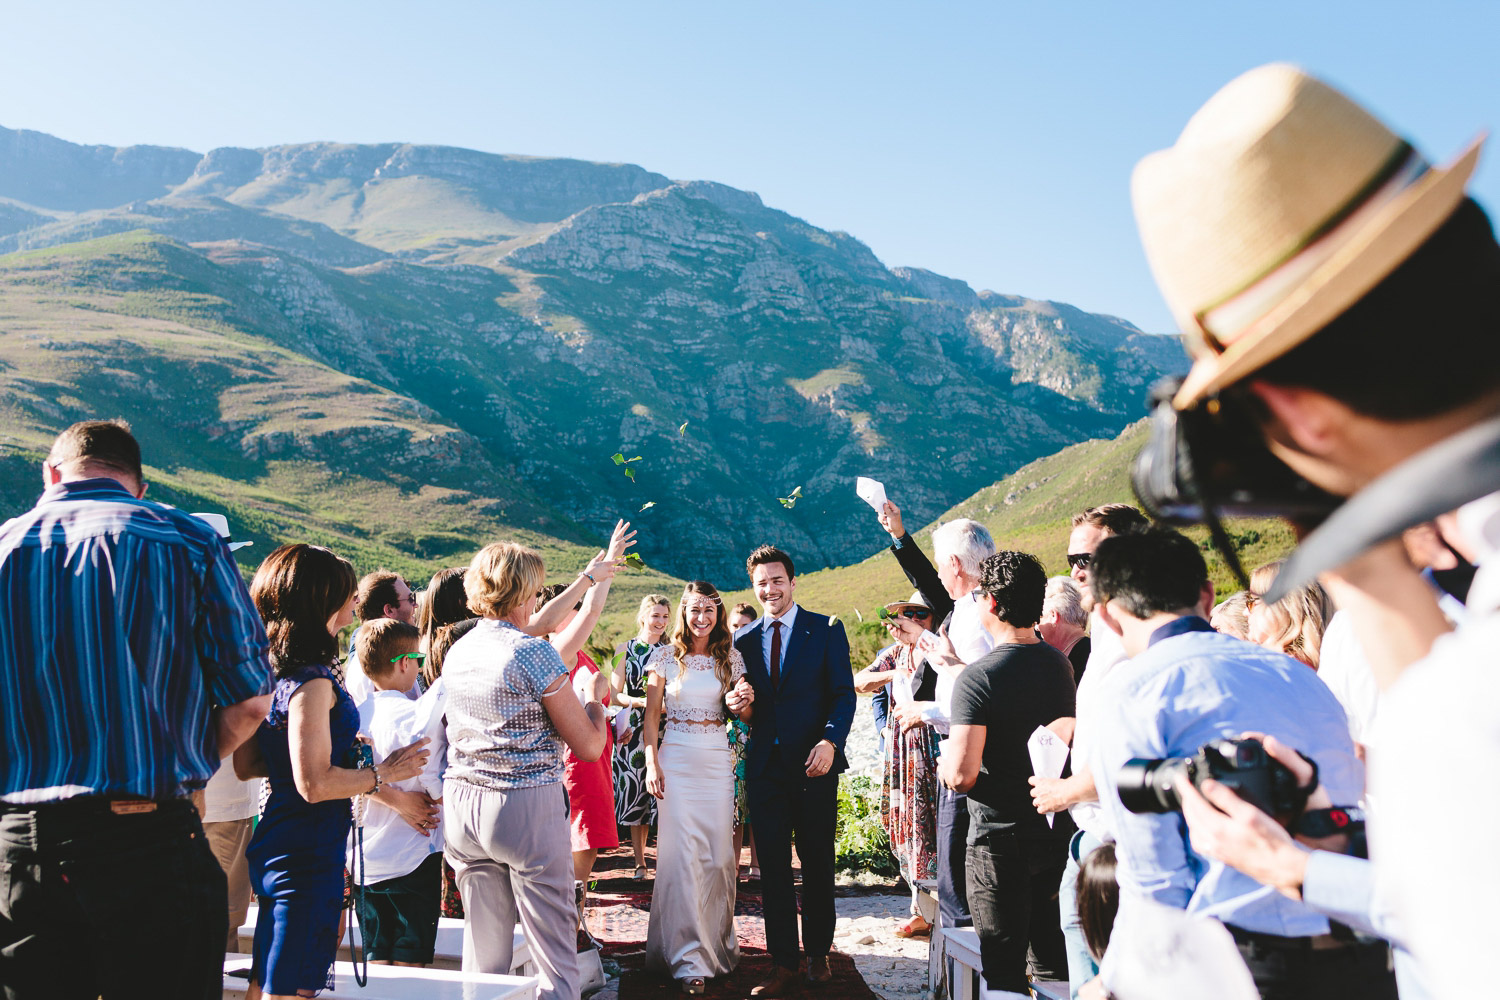 greyton-wedding-western-cape-photographer-river-bed-proteas-south-african99.jpg